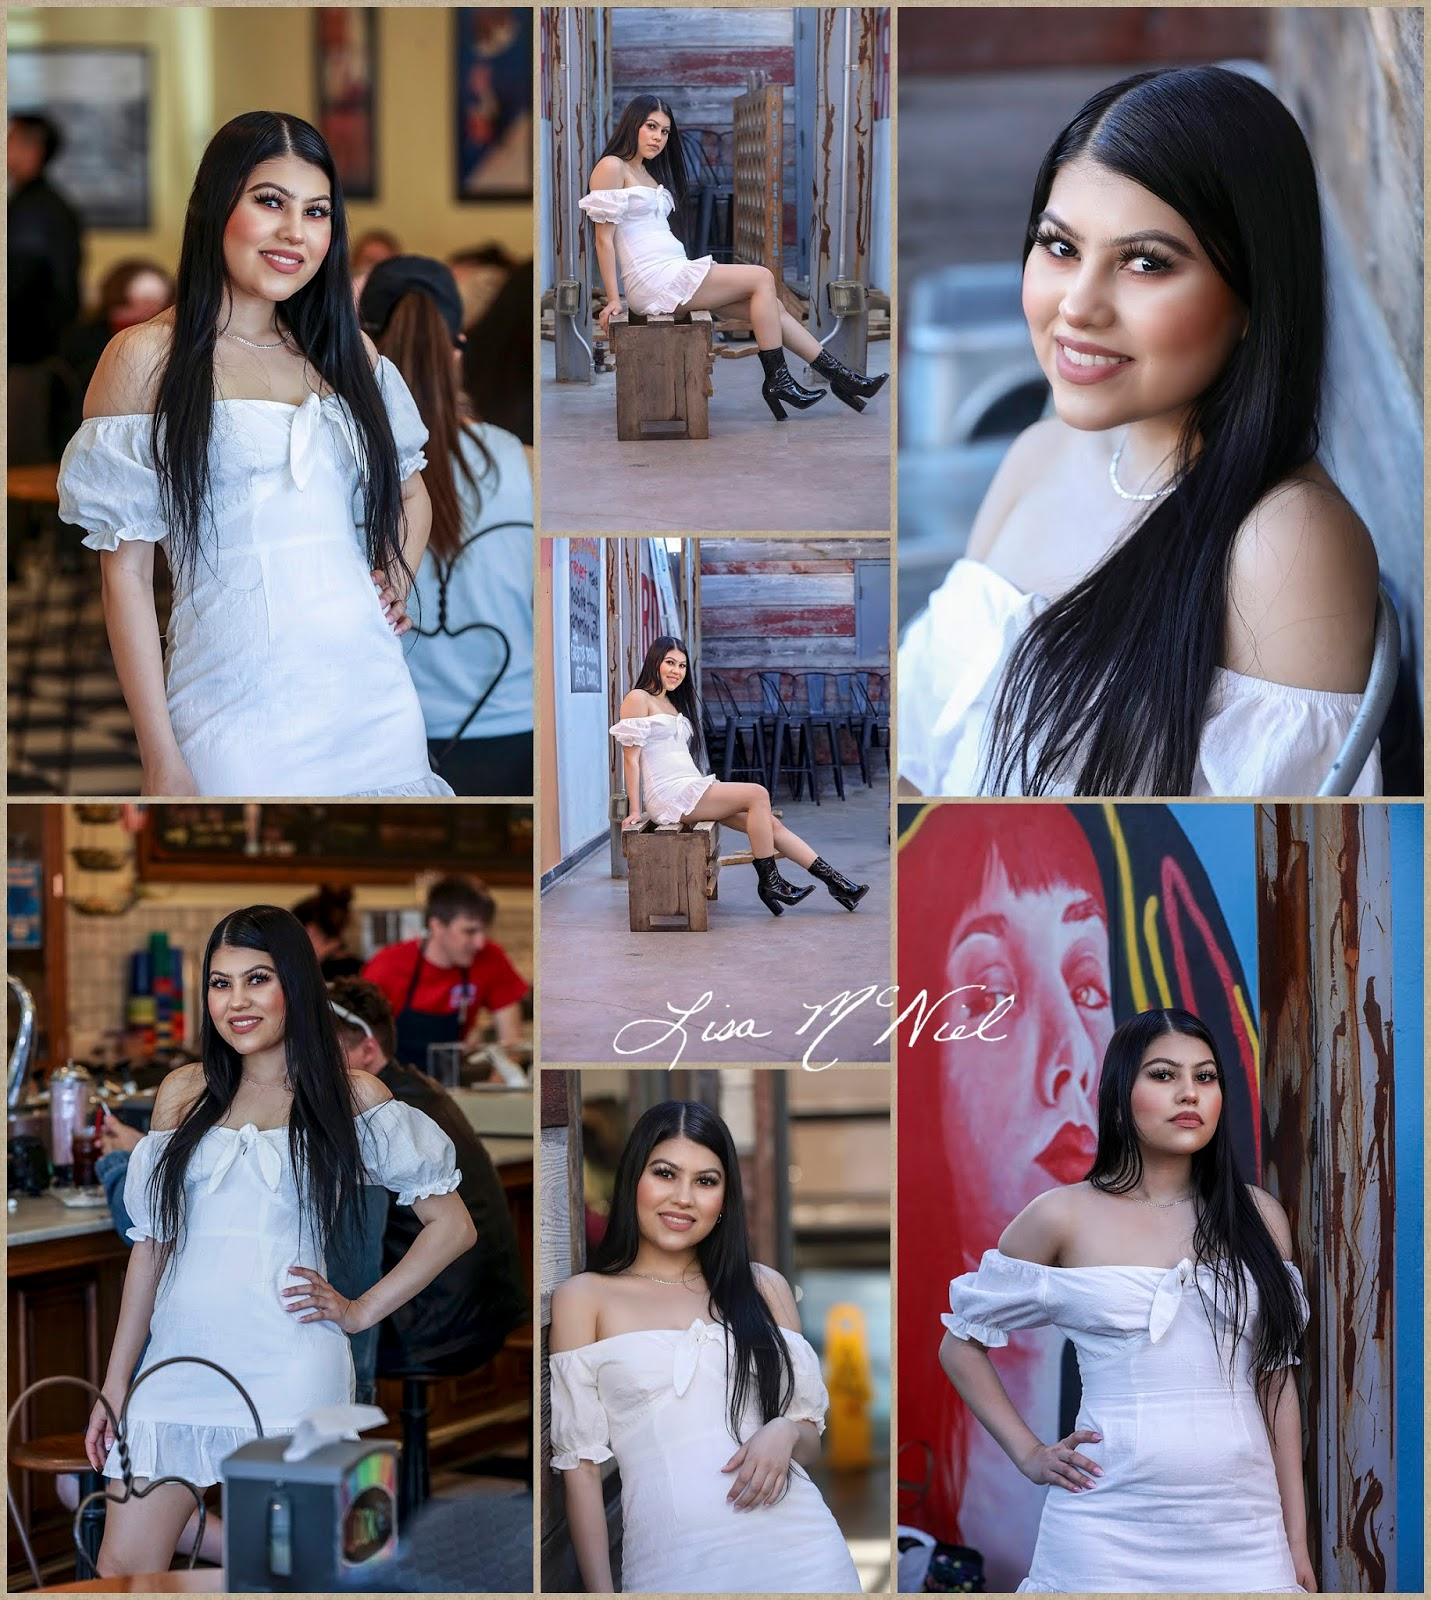 teen girl in white dress in rustic open air restaurant